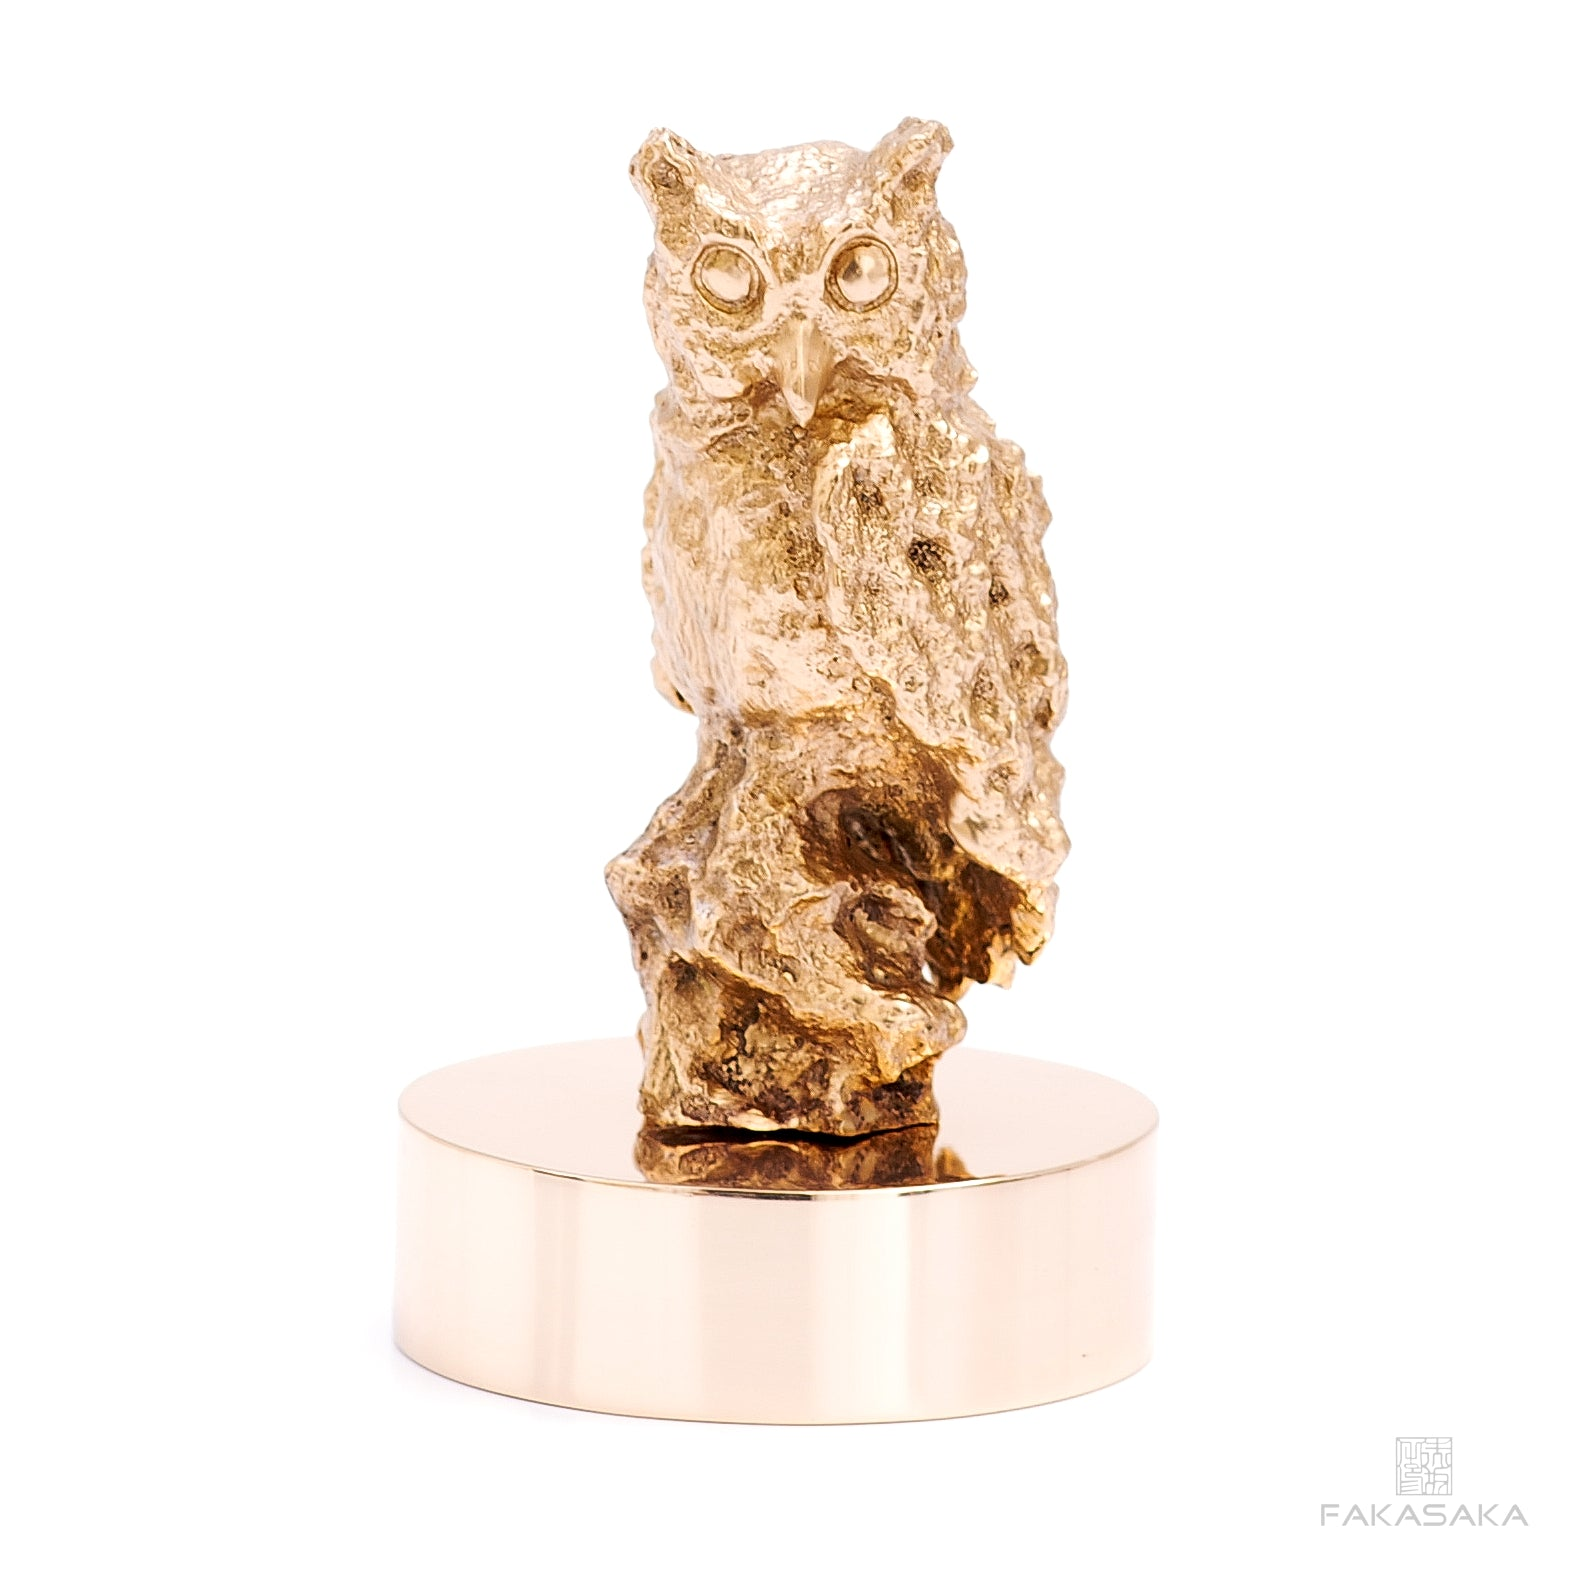 OWL SCULPTURE / PAPER WEIGHT<br><br>POLISHED BRONZE<br>BRONZE BASE